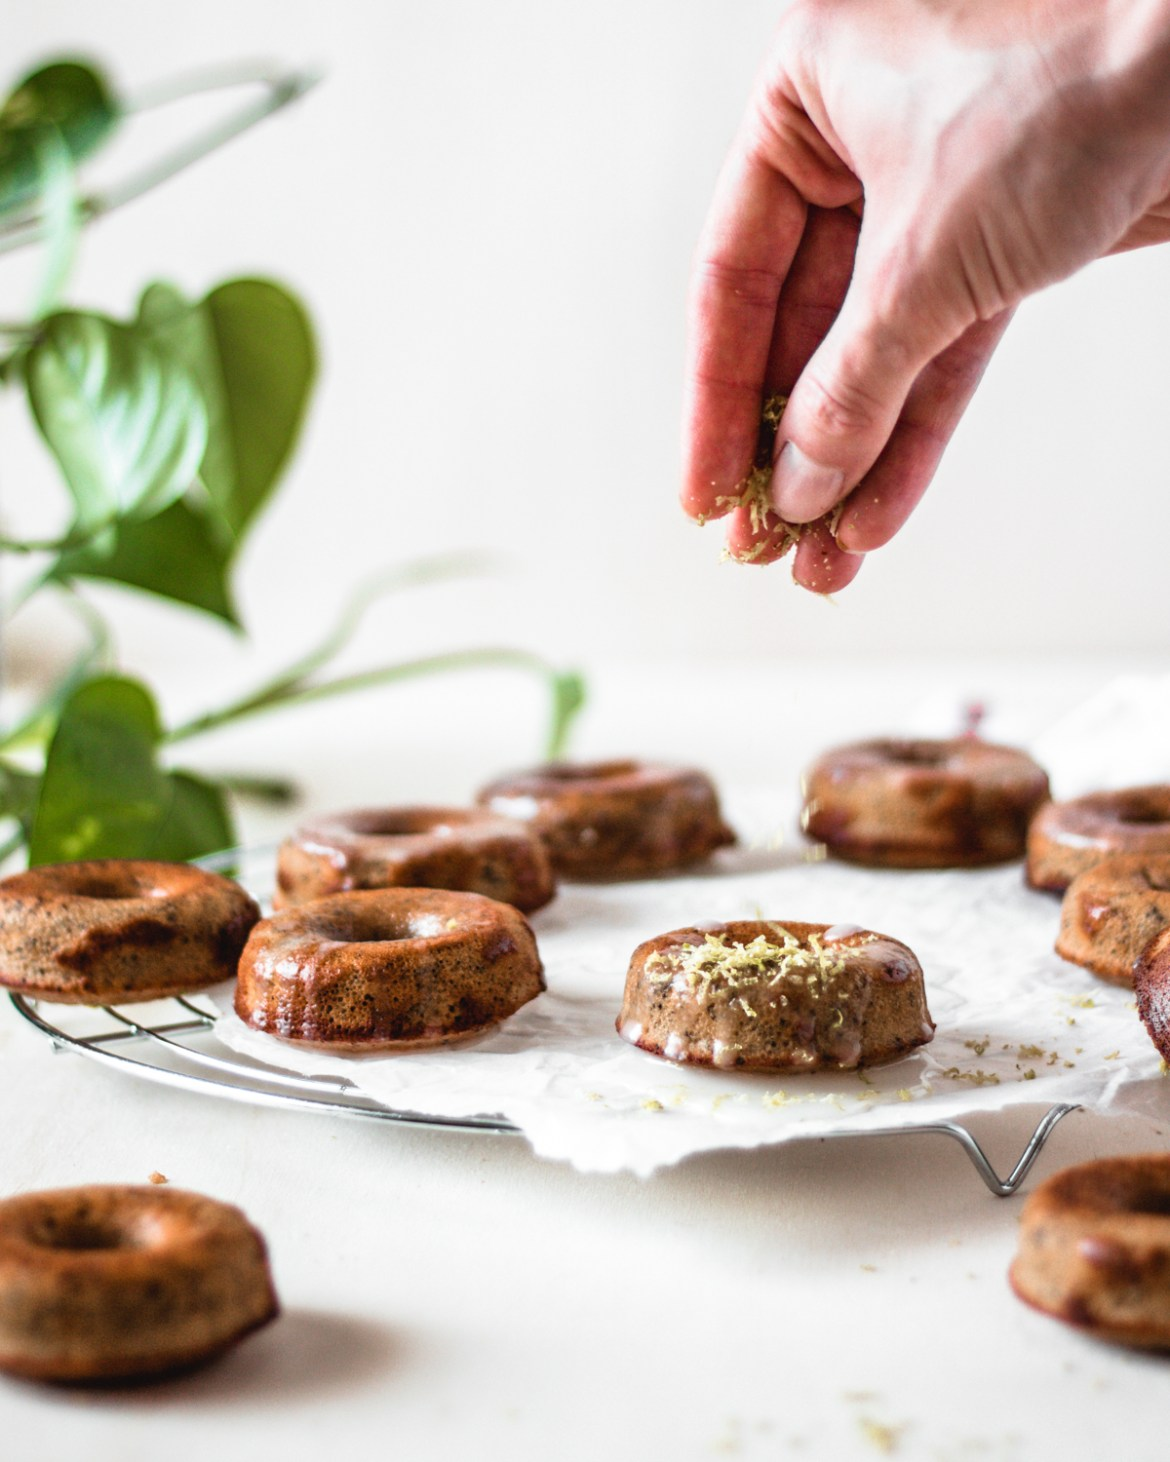 Vegan & Gluten-free Poppyseed & Lemon doughnuts from chickpea flour | Healthy Goodies by Lucia